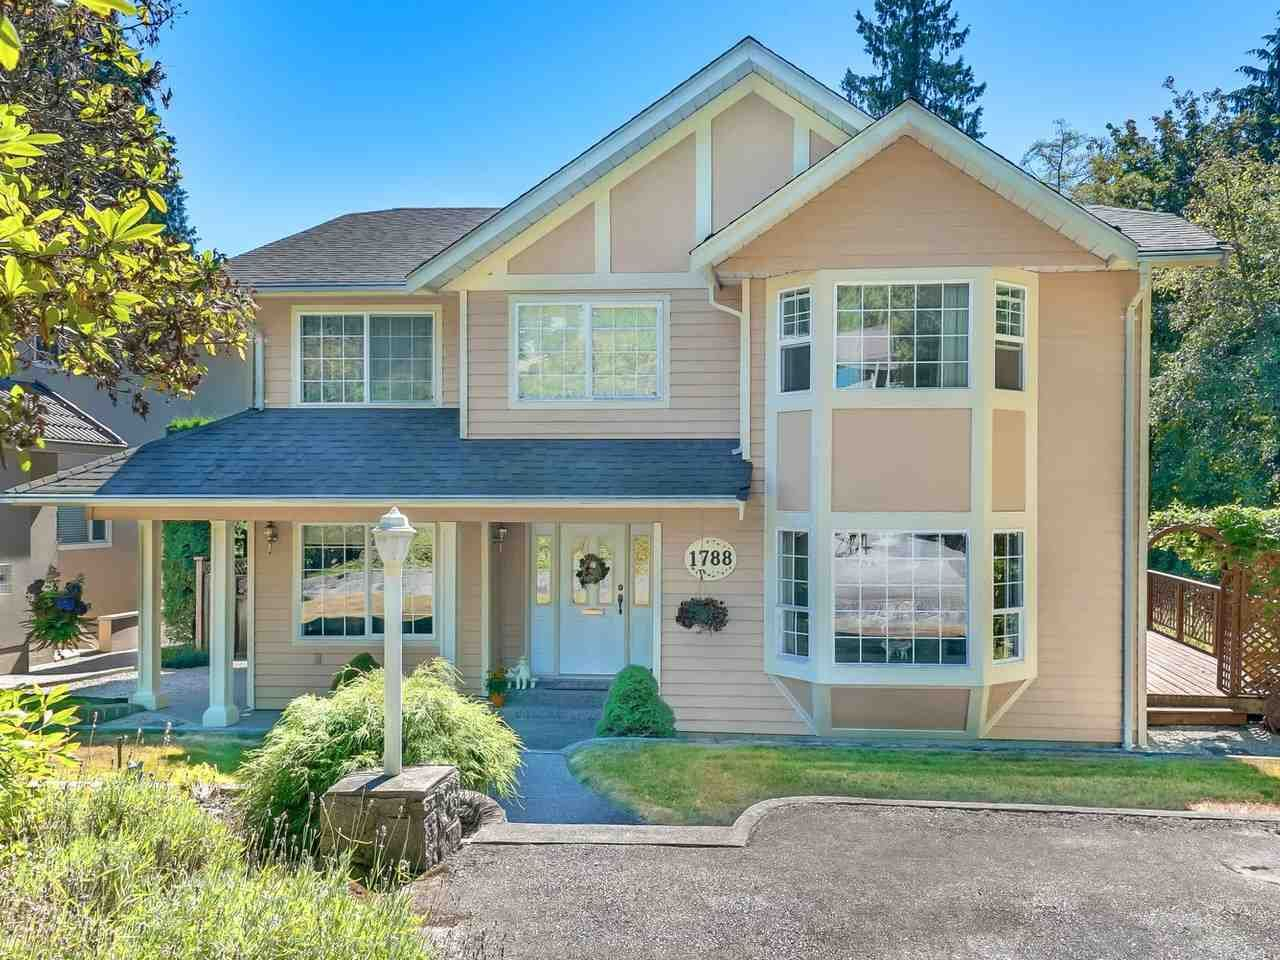 Photo 2: Photos: 1788 GORDON Avenue in West Vancouver: Ambleside House for sale : MLS®# R2207715